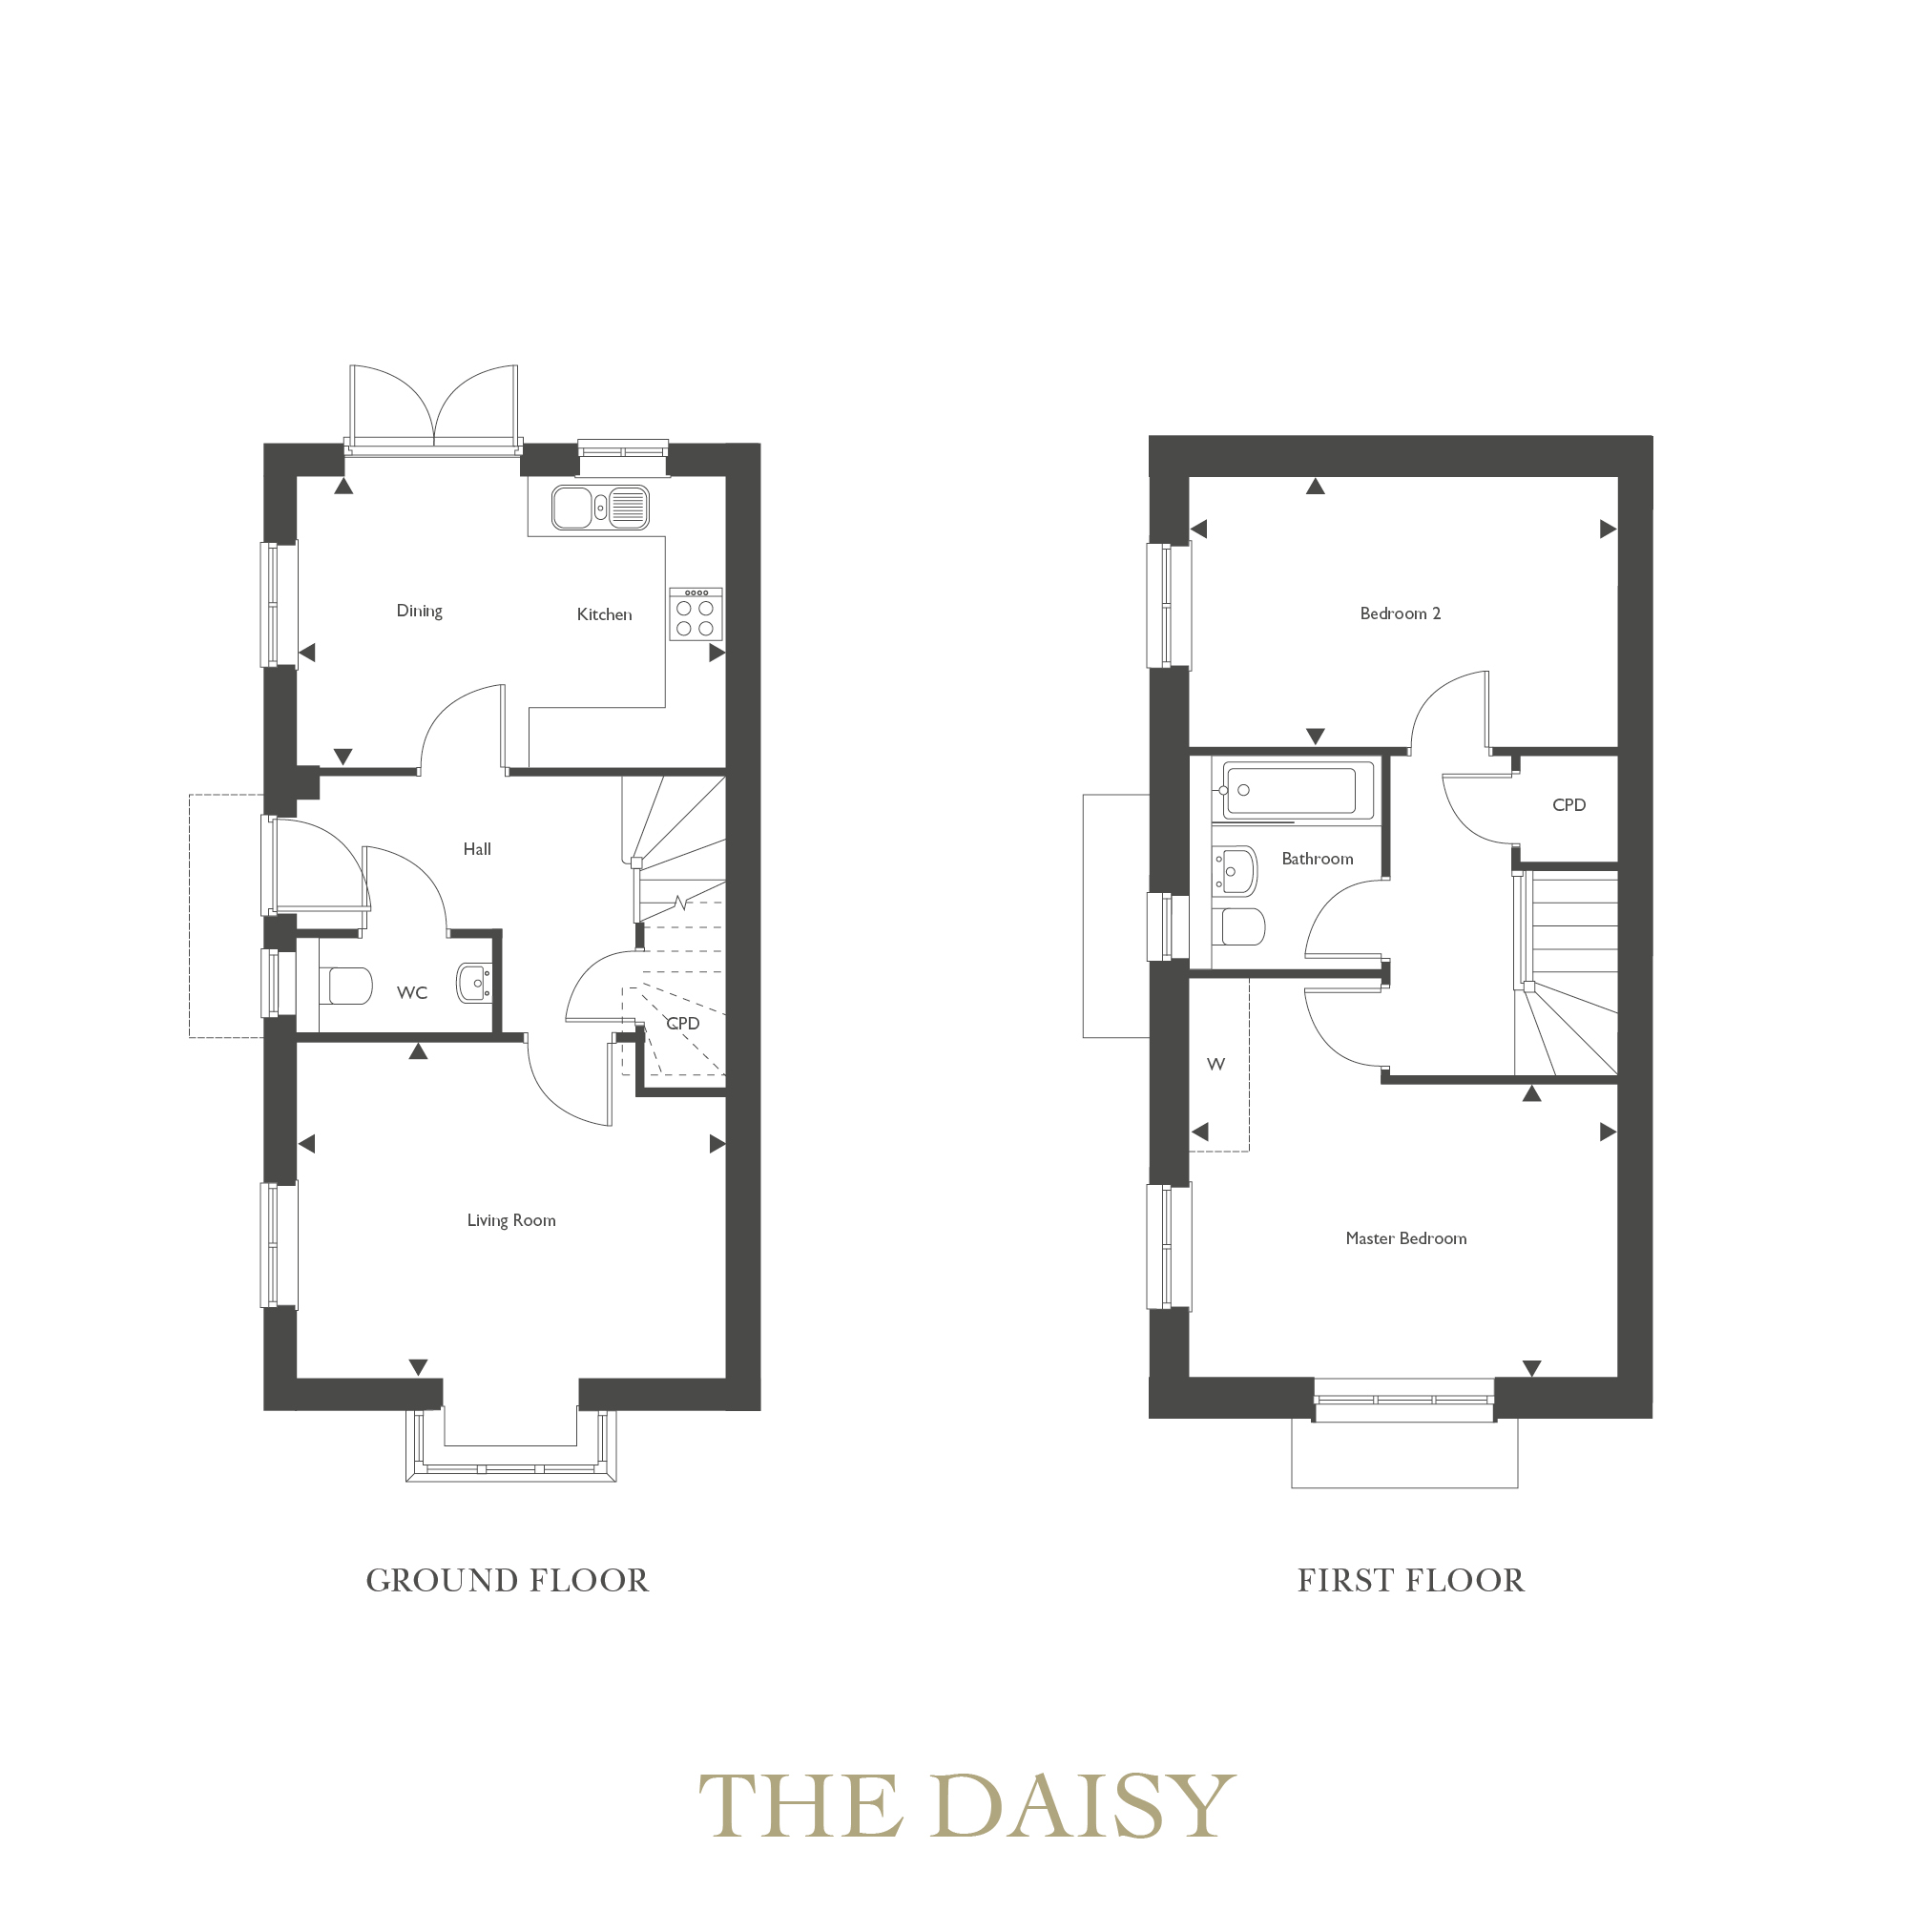 Plot 12 – The Daisy Floor plan